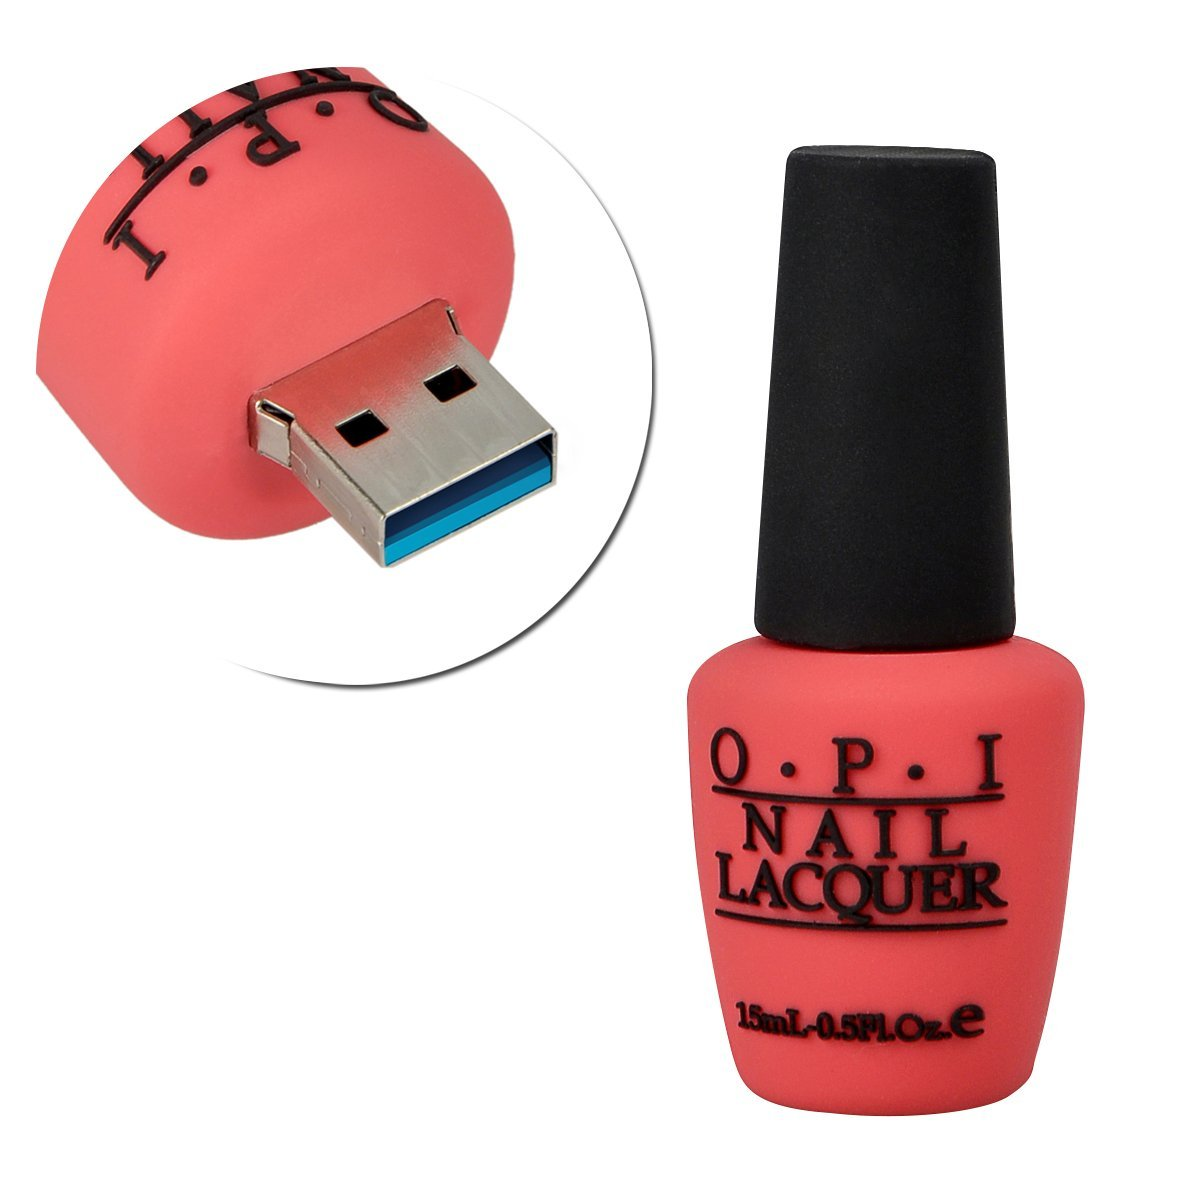 32GB USB 3.0 Nail Polish Bottle Flash Drive